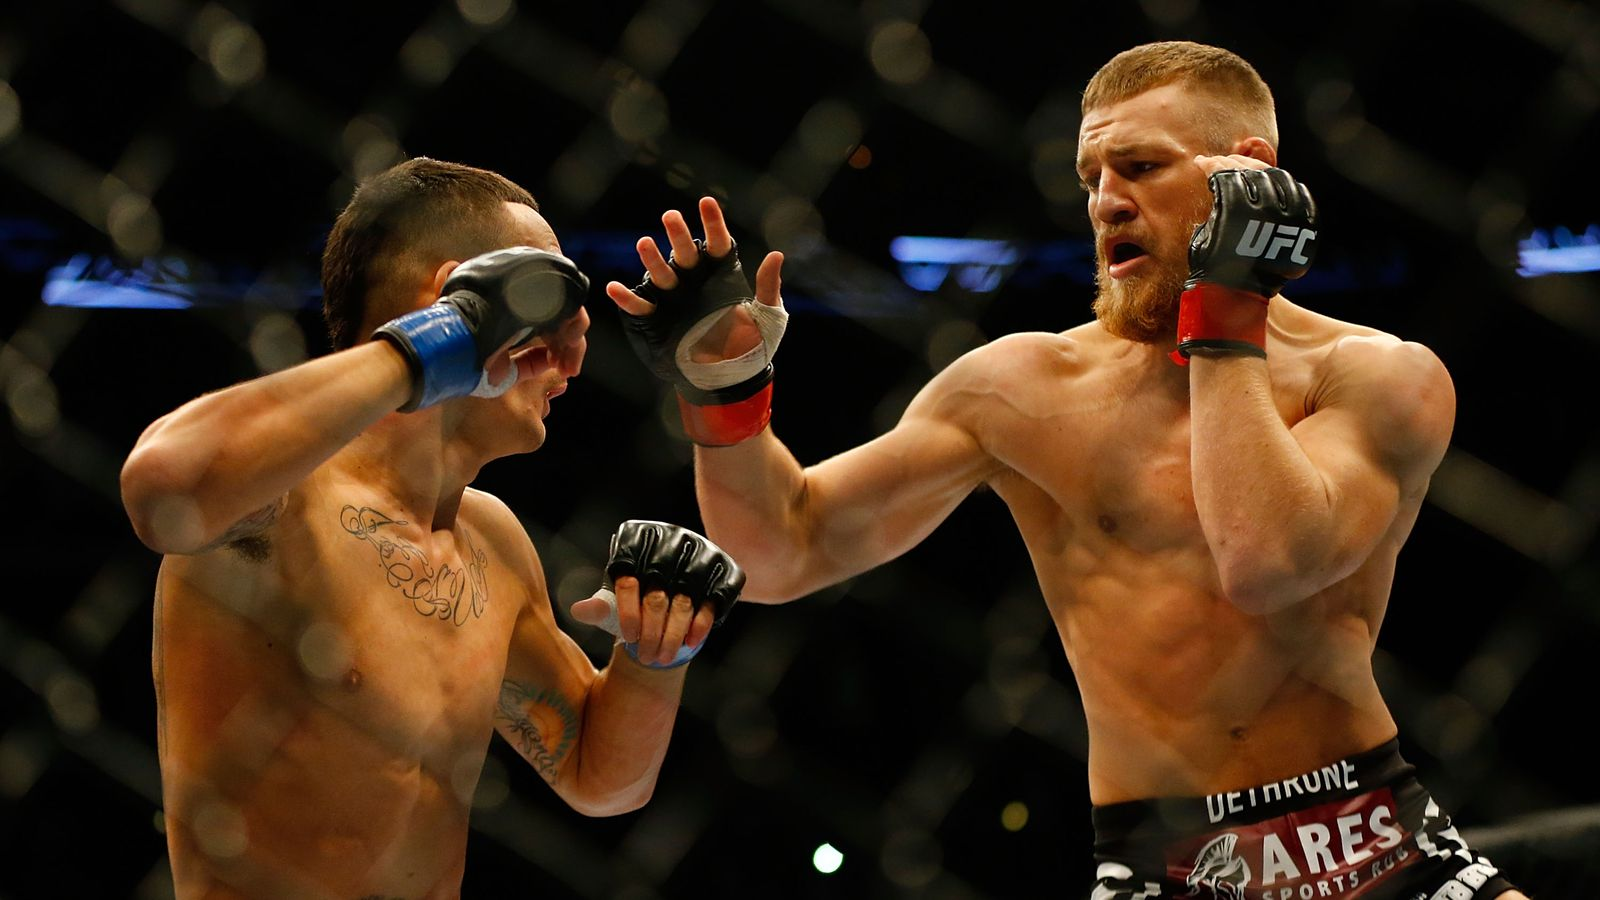 Holloway: '2015 champ' McGregor should beg to fight me